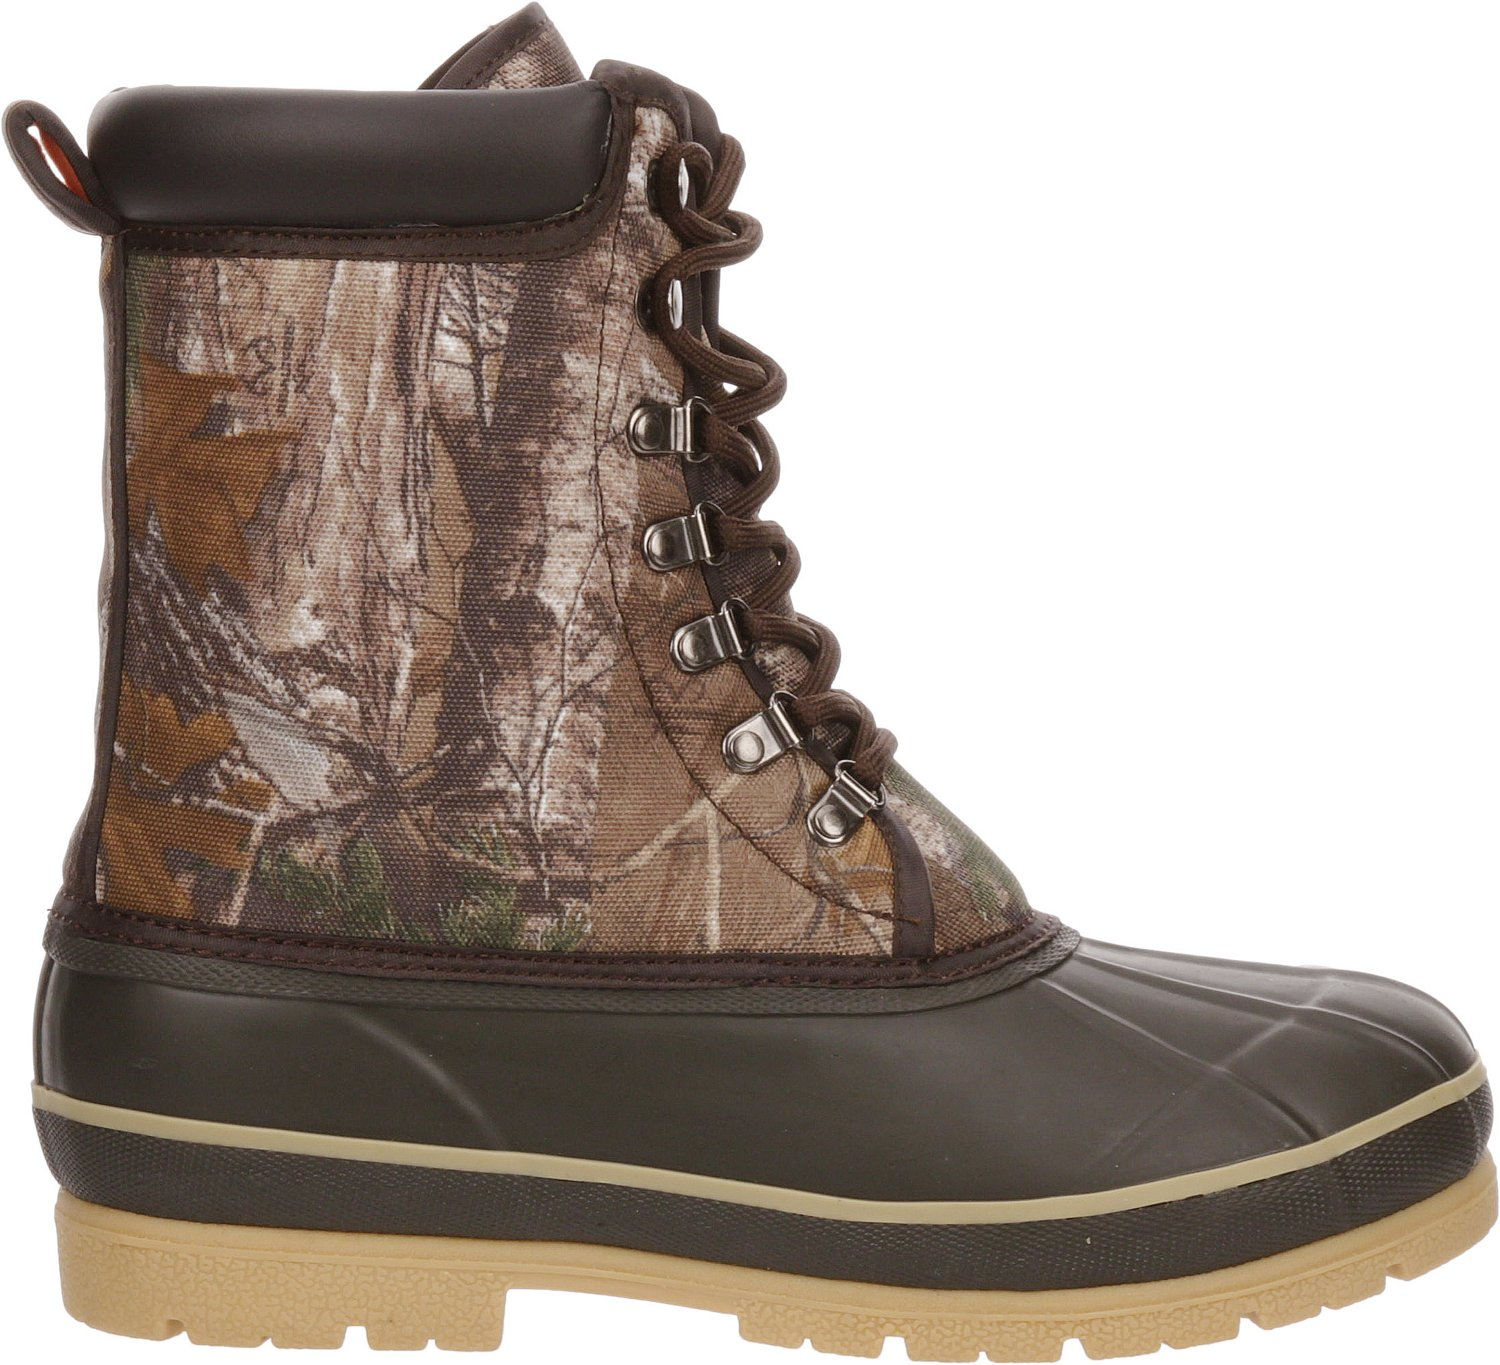 6d6054e3a20 Display product reviews for Magellan Outdoors Men s Duc Boot III Hunting  Boots